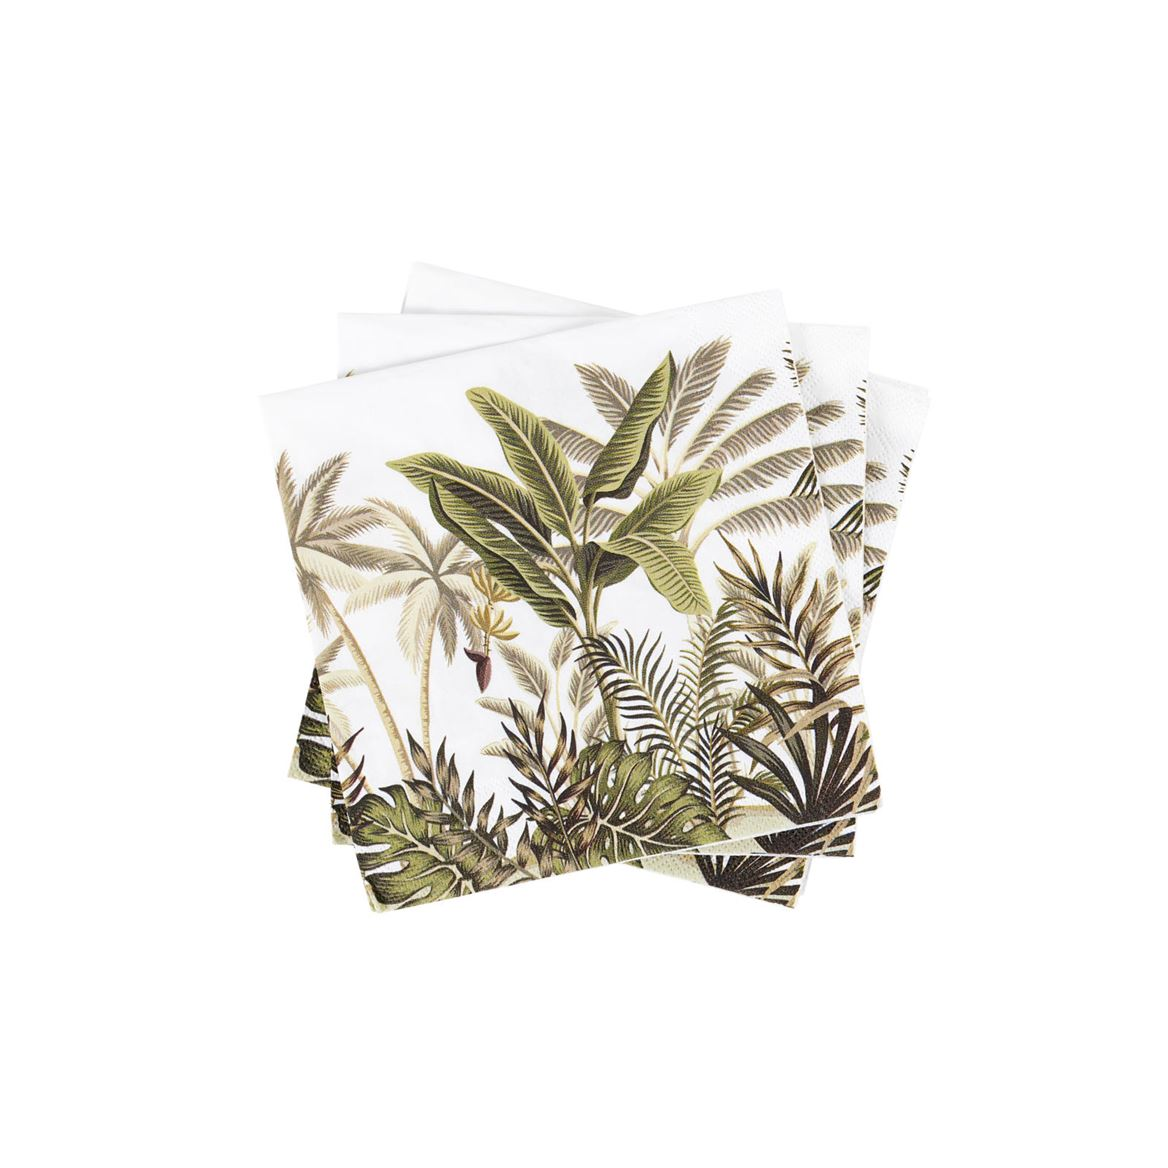 JUNGLE TREES Set de 20 serviettes vert Larg. 25 x Long. 25 cm_jungle-trees-set-de-20-serviettes-vert-larg--25-x-long--25-cm